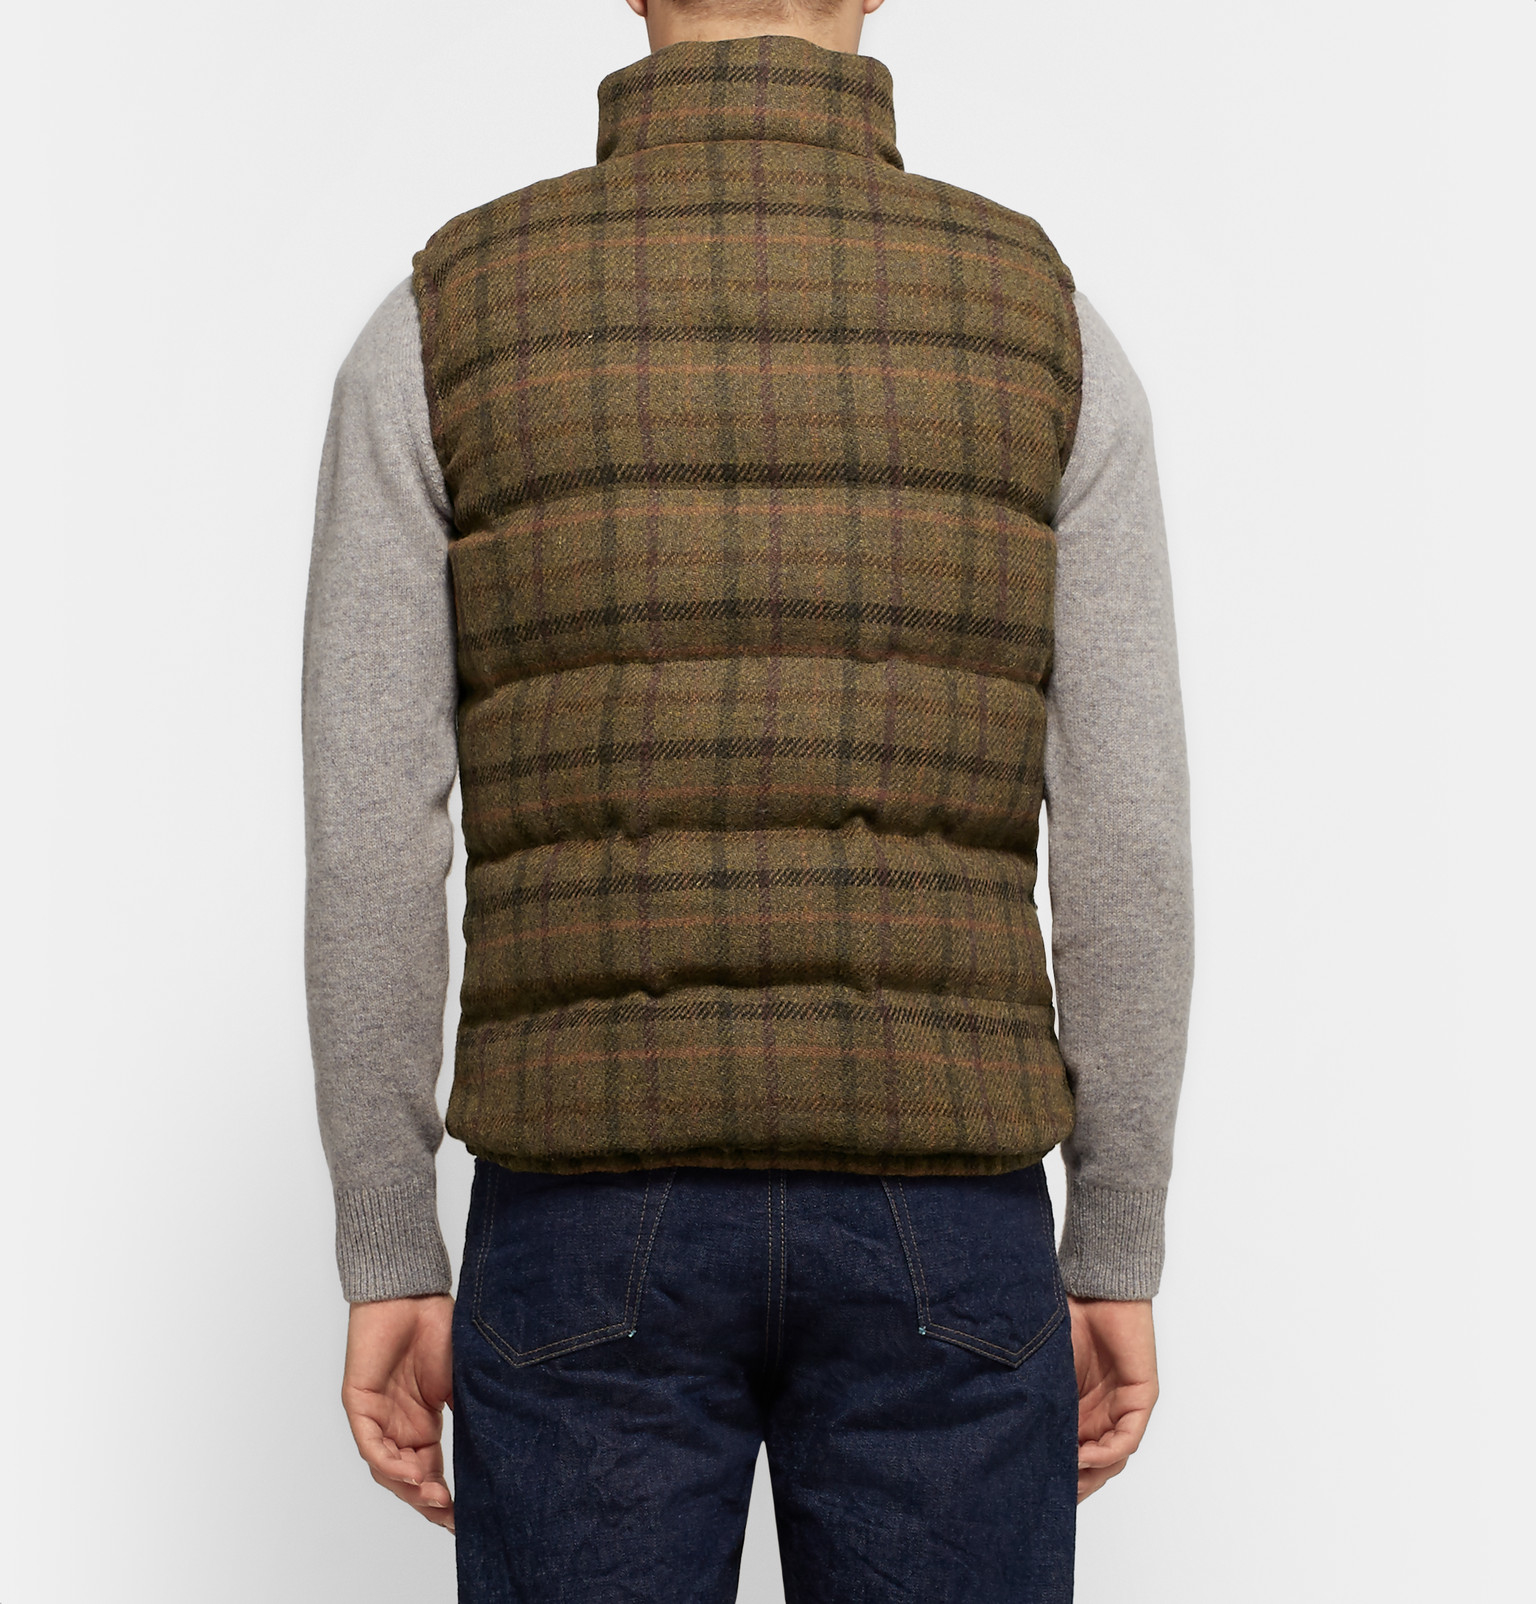 aspesi-army-green-quilted-checked-harris-wool-tweed-down-gilet-green-product-0-770504310-normal.jpeg